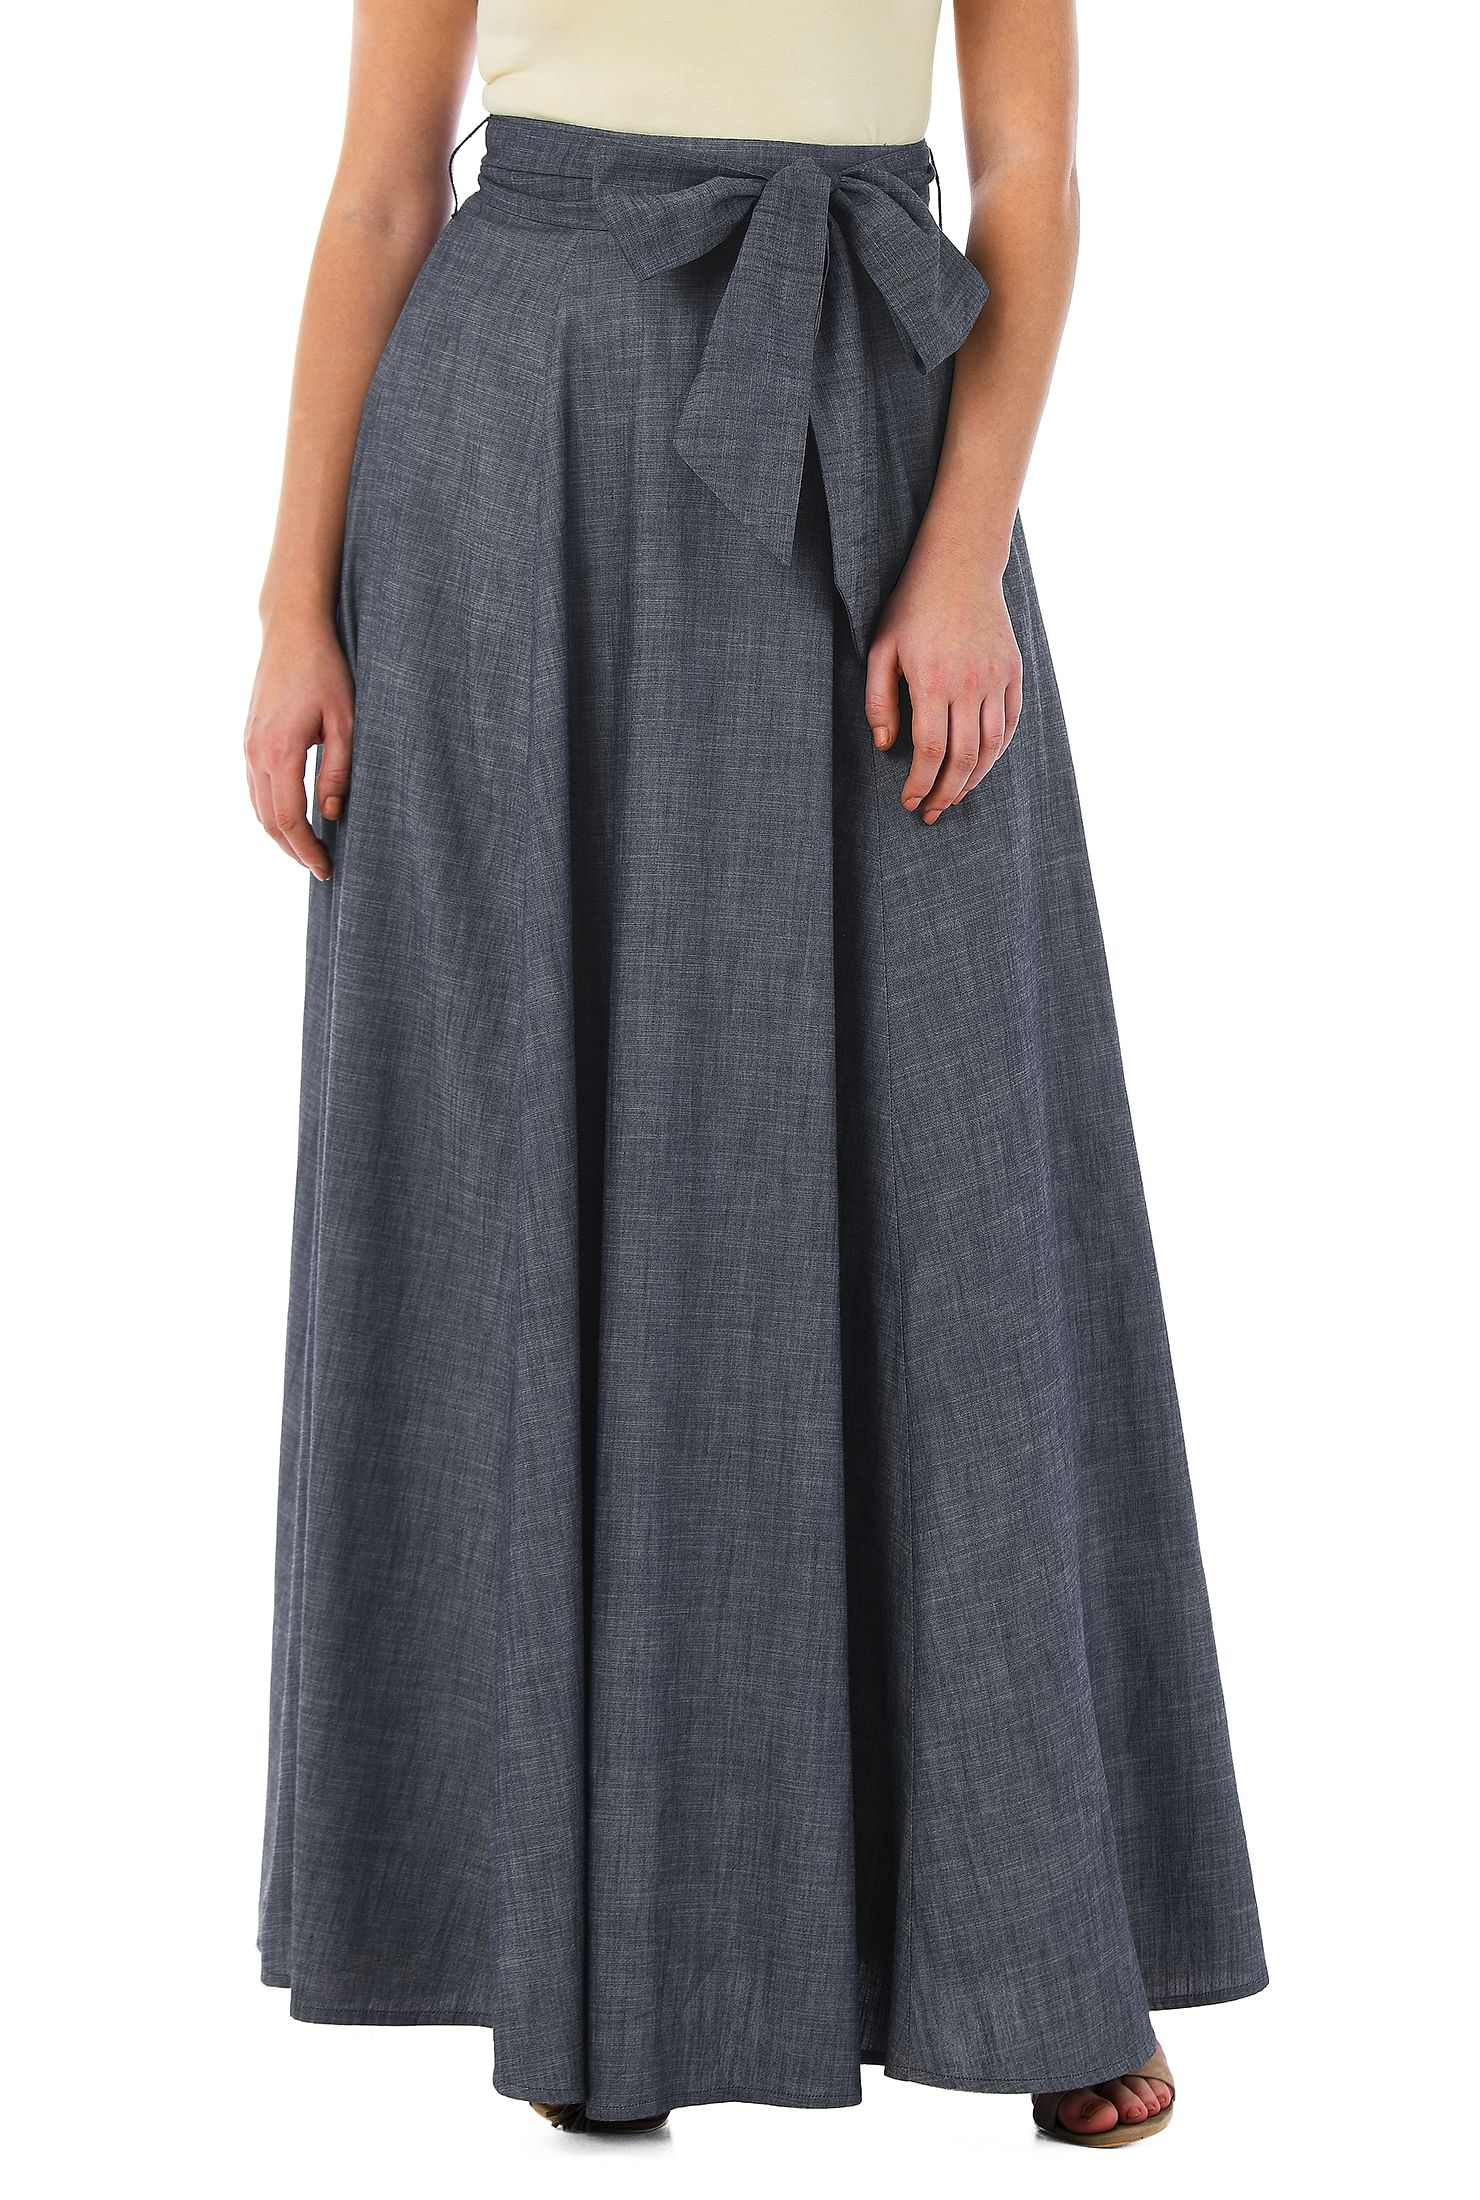 0efc7f668a banded waist skirts, Chambray Skirts, cotton skirts, Feminine Skirts,  fifties inspired